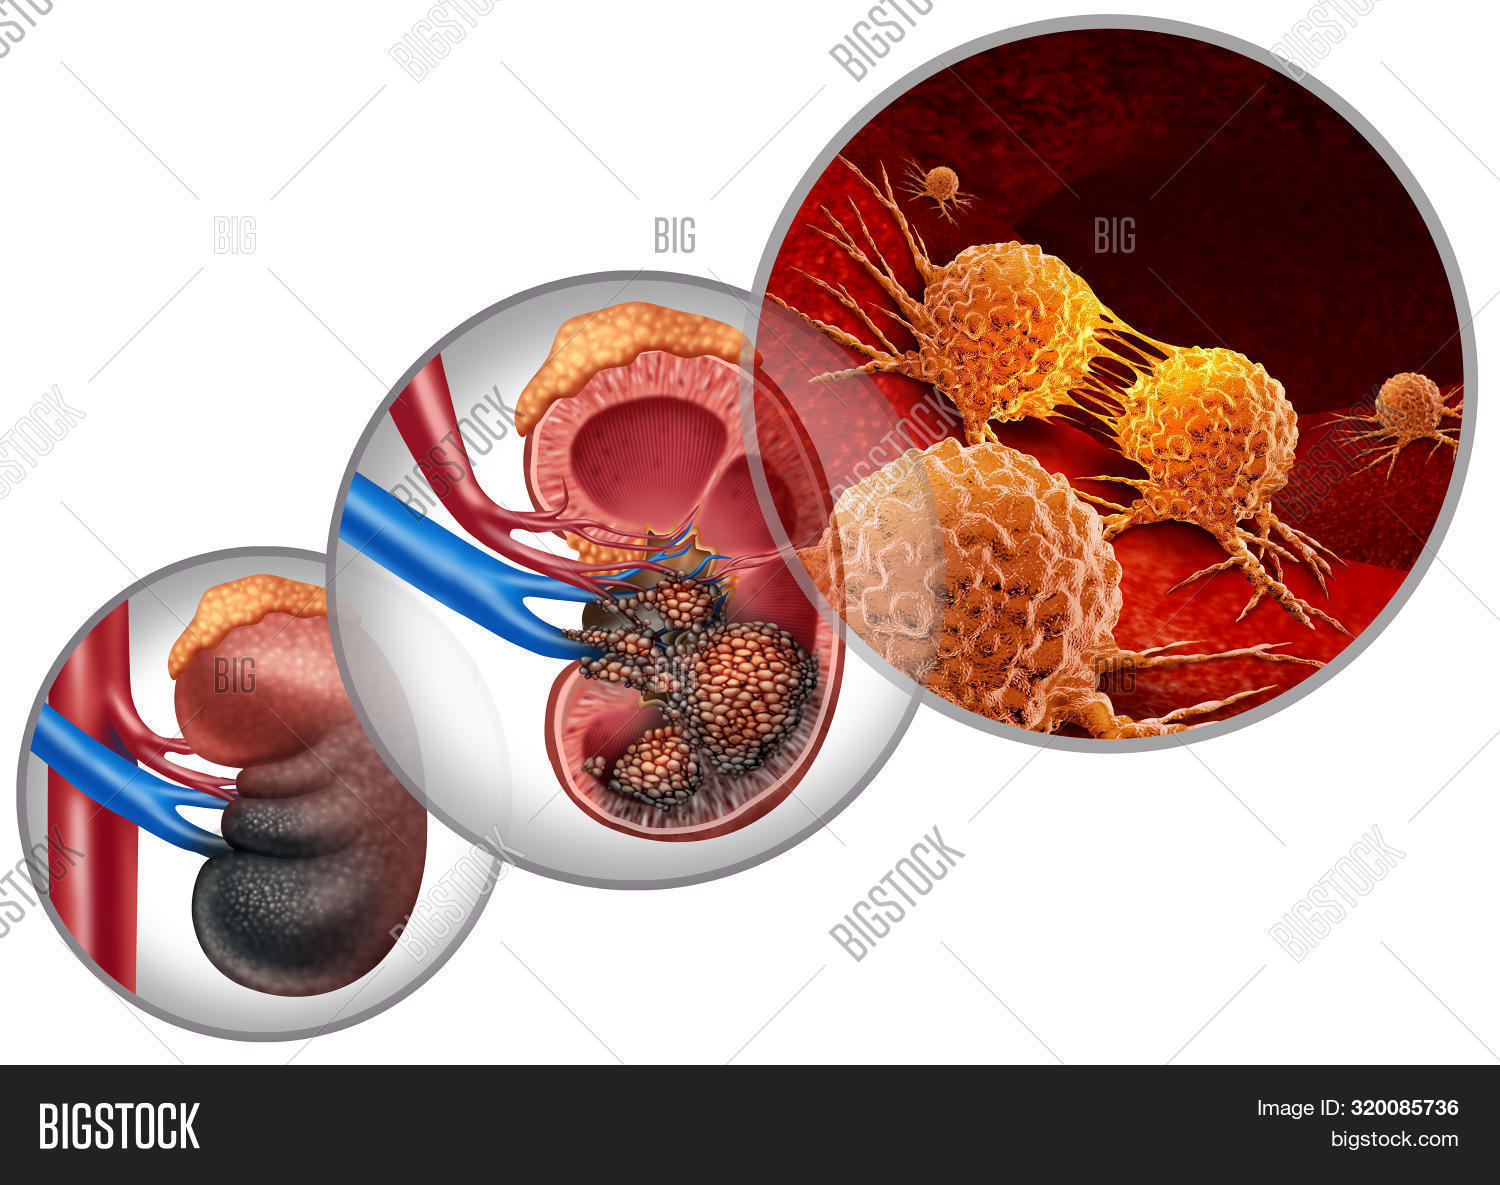 Kidney Cancer Disease Medical Concept As Malignant Cells In A Human Body Attacking The Urinary Syste